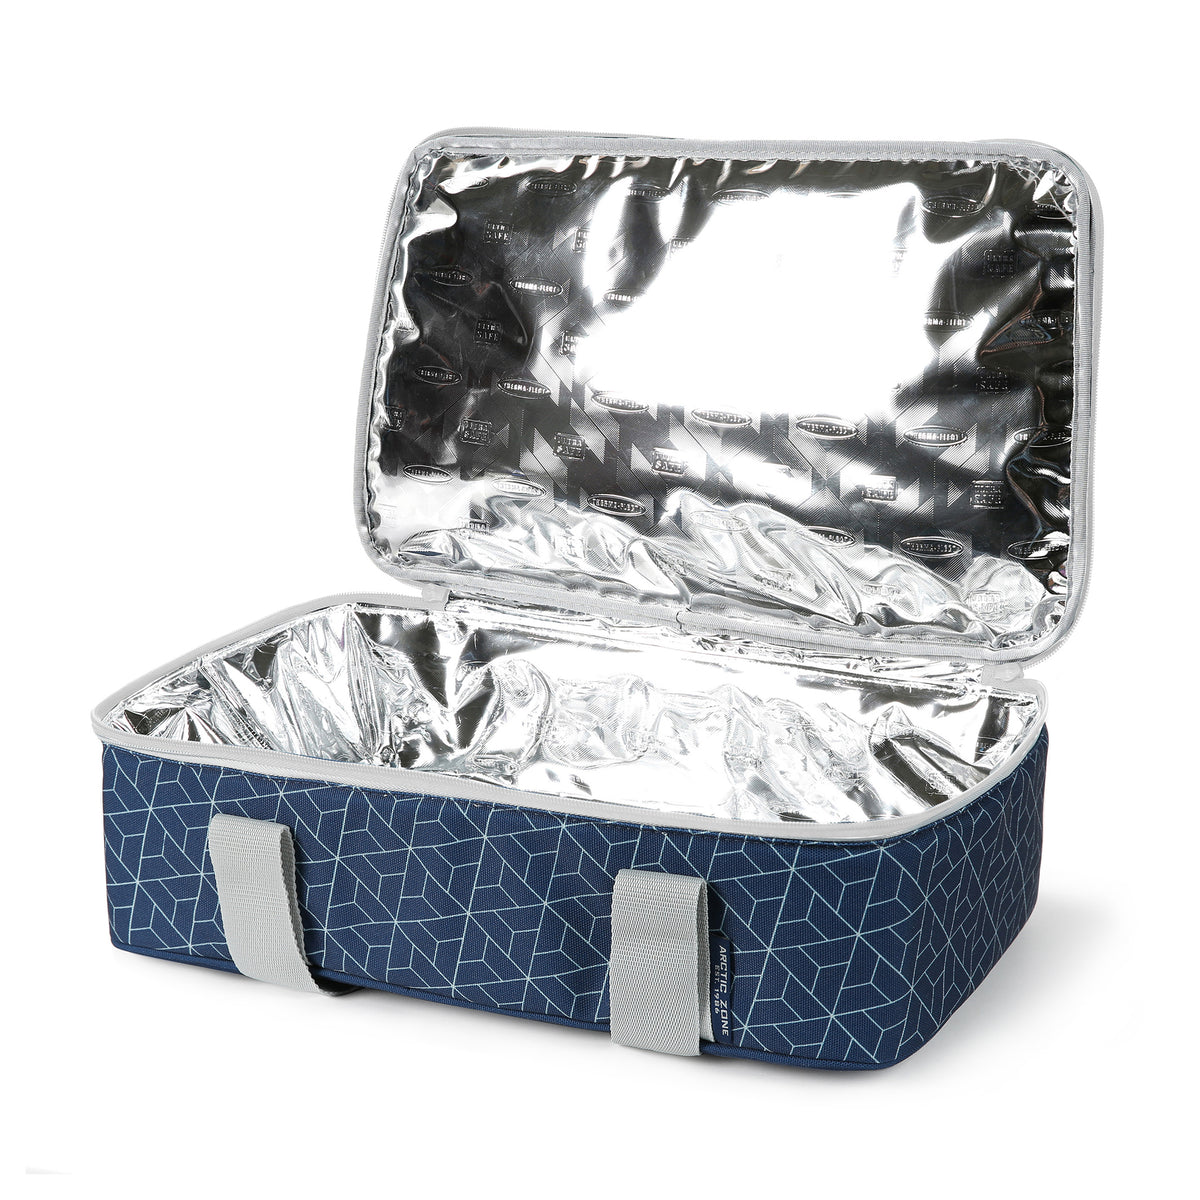 Arctic Zone® Food Pro Thermal Carrier - Navy - Open, empty